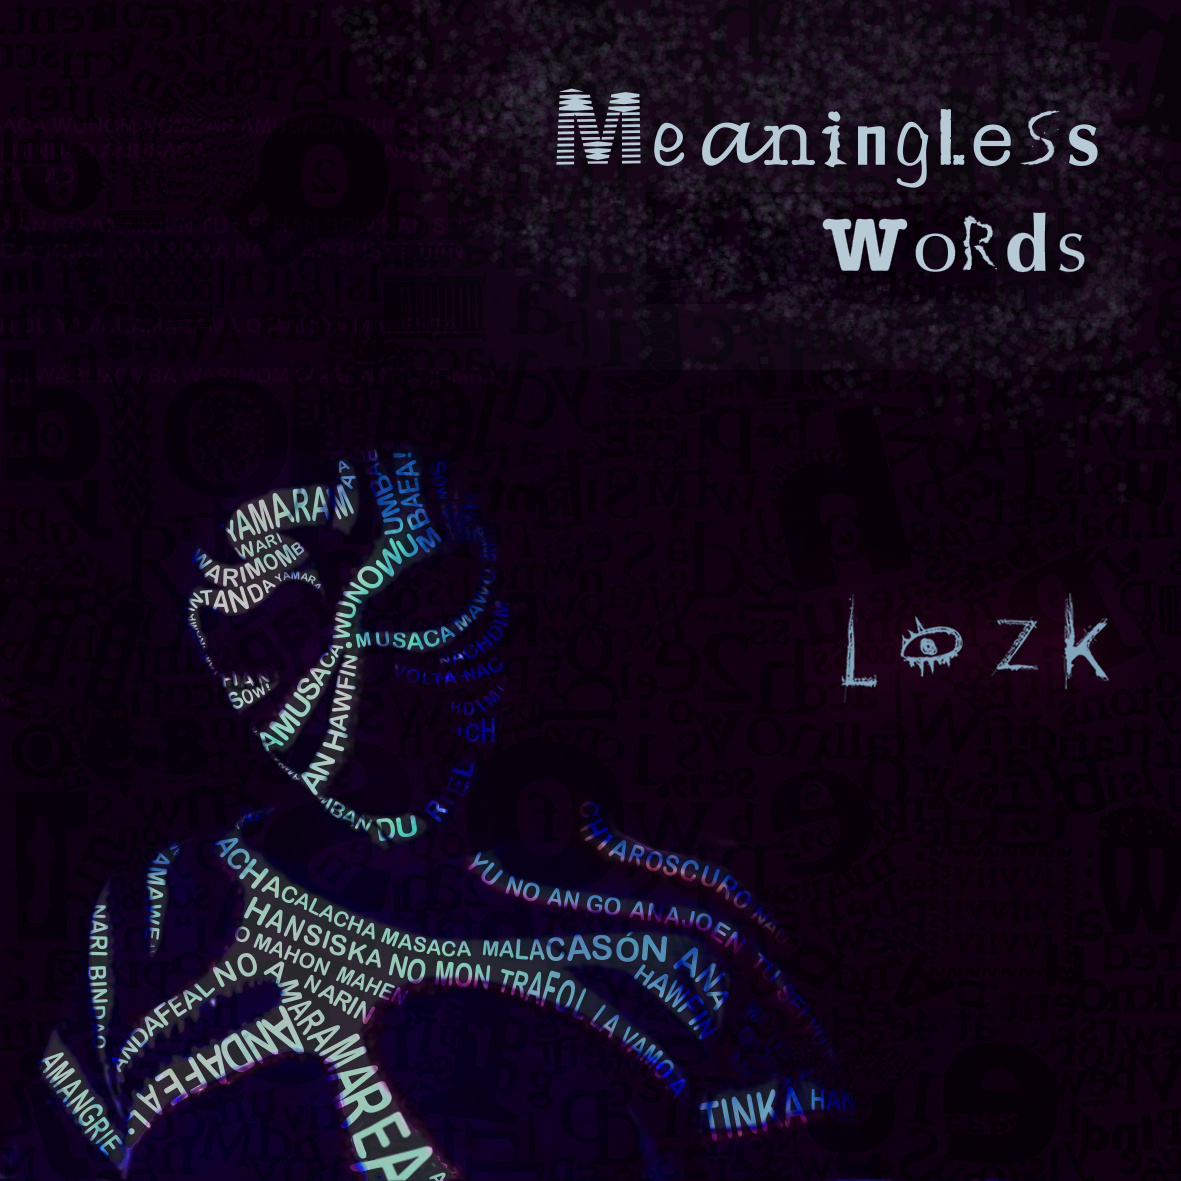 CD Pre-Review: Meaningless Words by Lozk